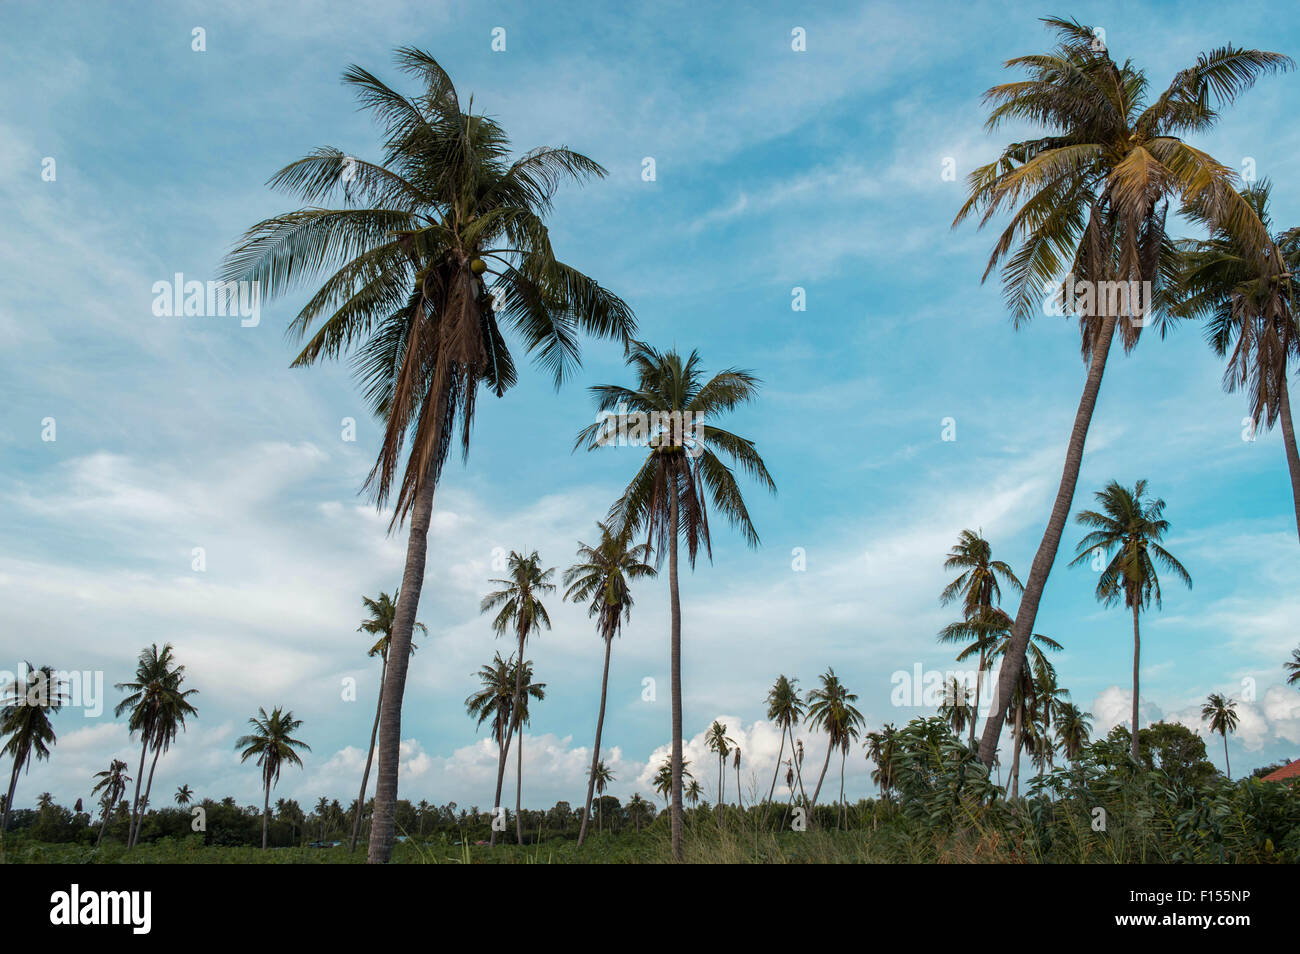 Looking At the Coconut Trees - Stock Image